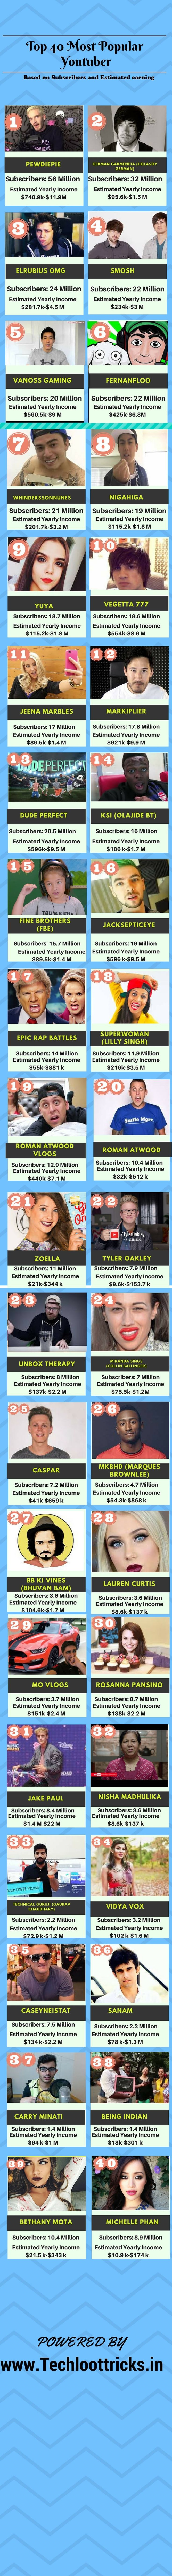 Top 40 most popular youtubers [infographic]